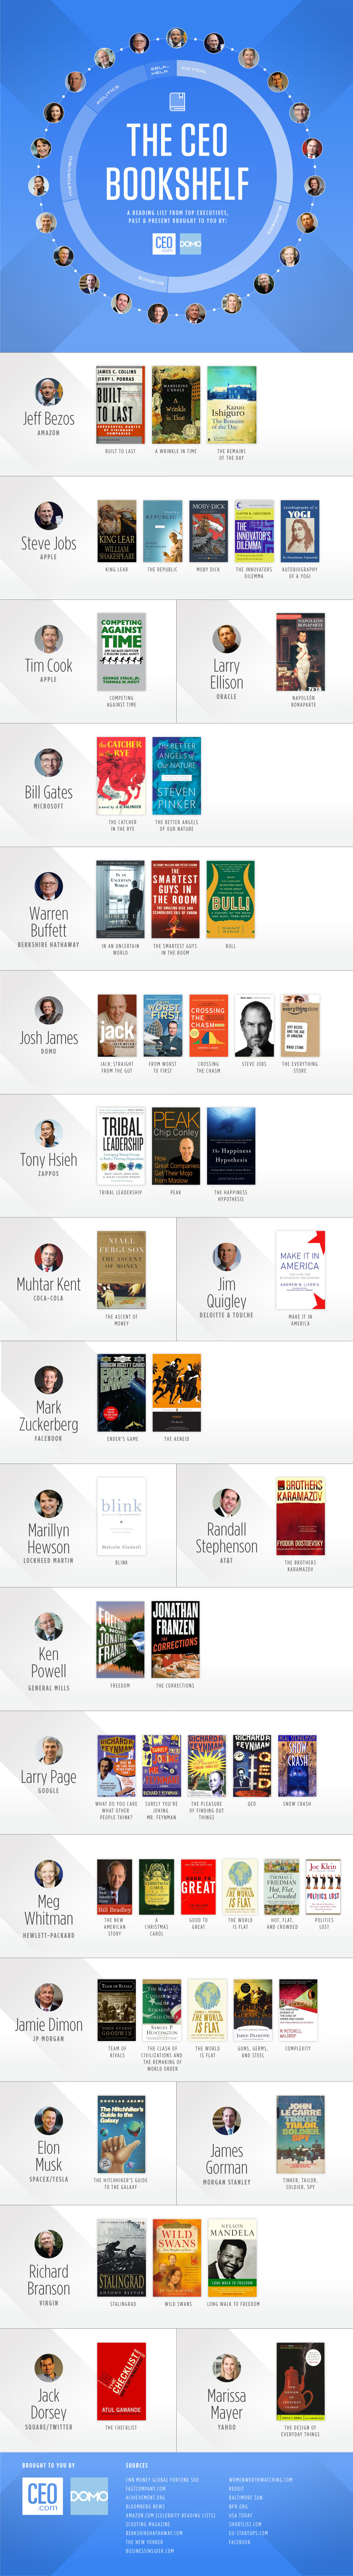 Books That Big-Name CEOs Can't Stop Reading